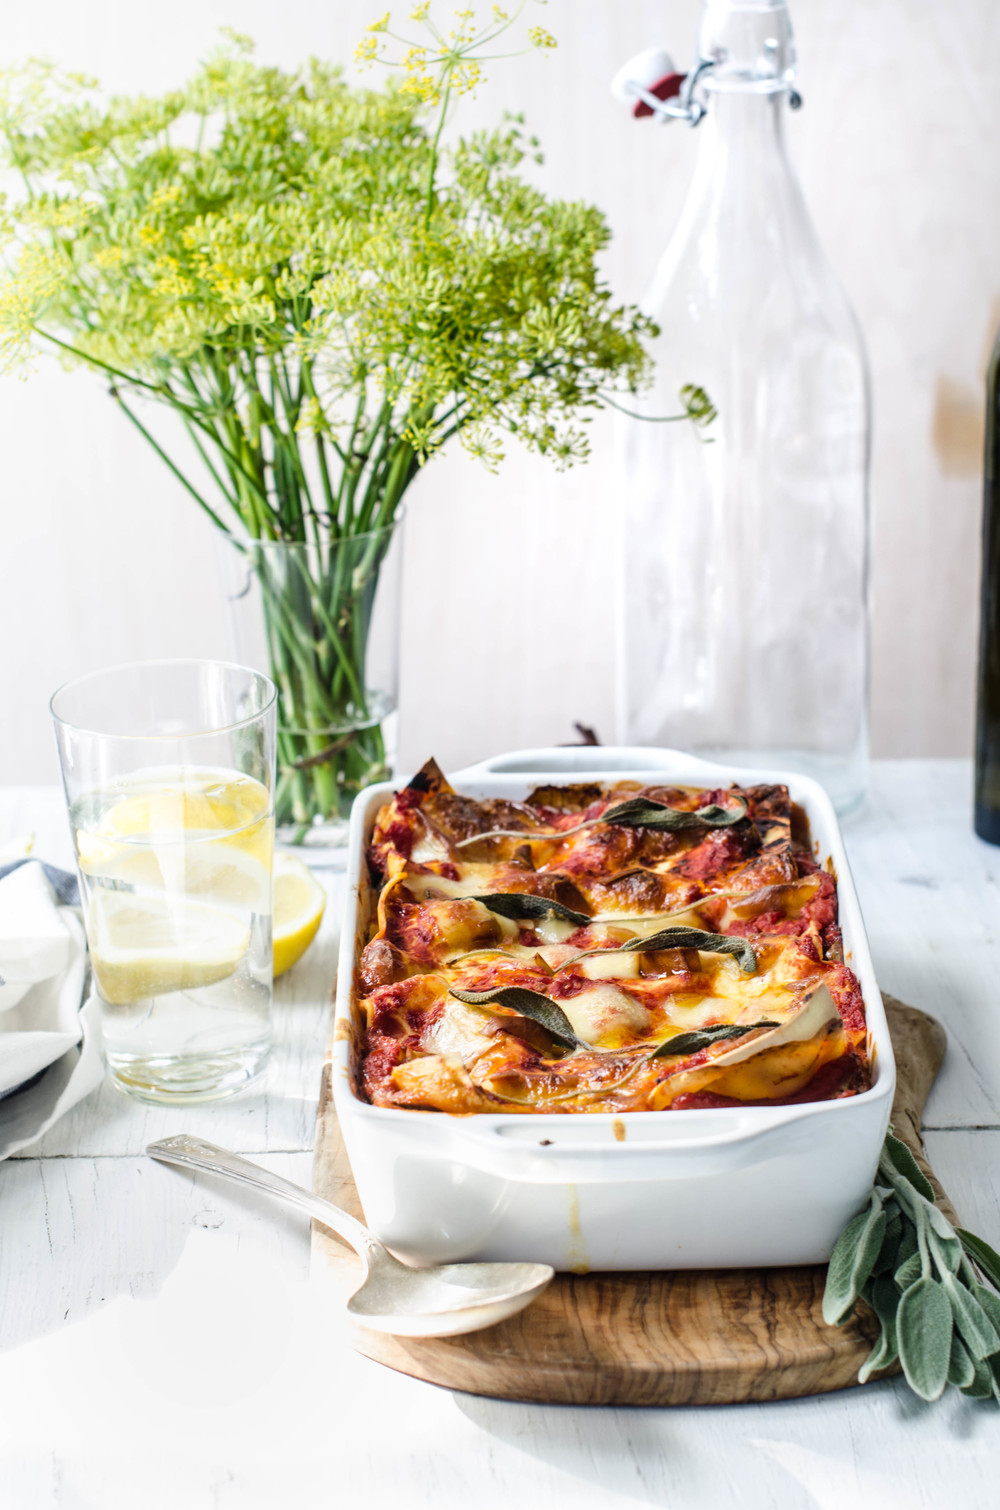 ROSE & IVY Journal Lasagna alla Norma